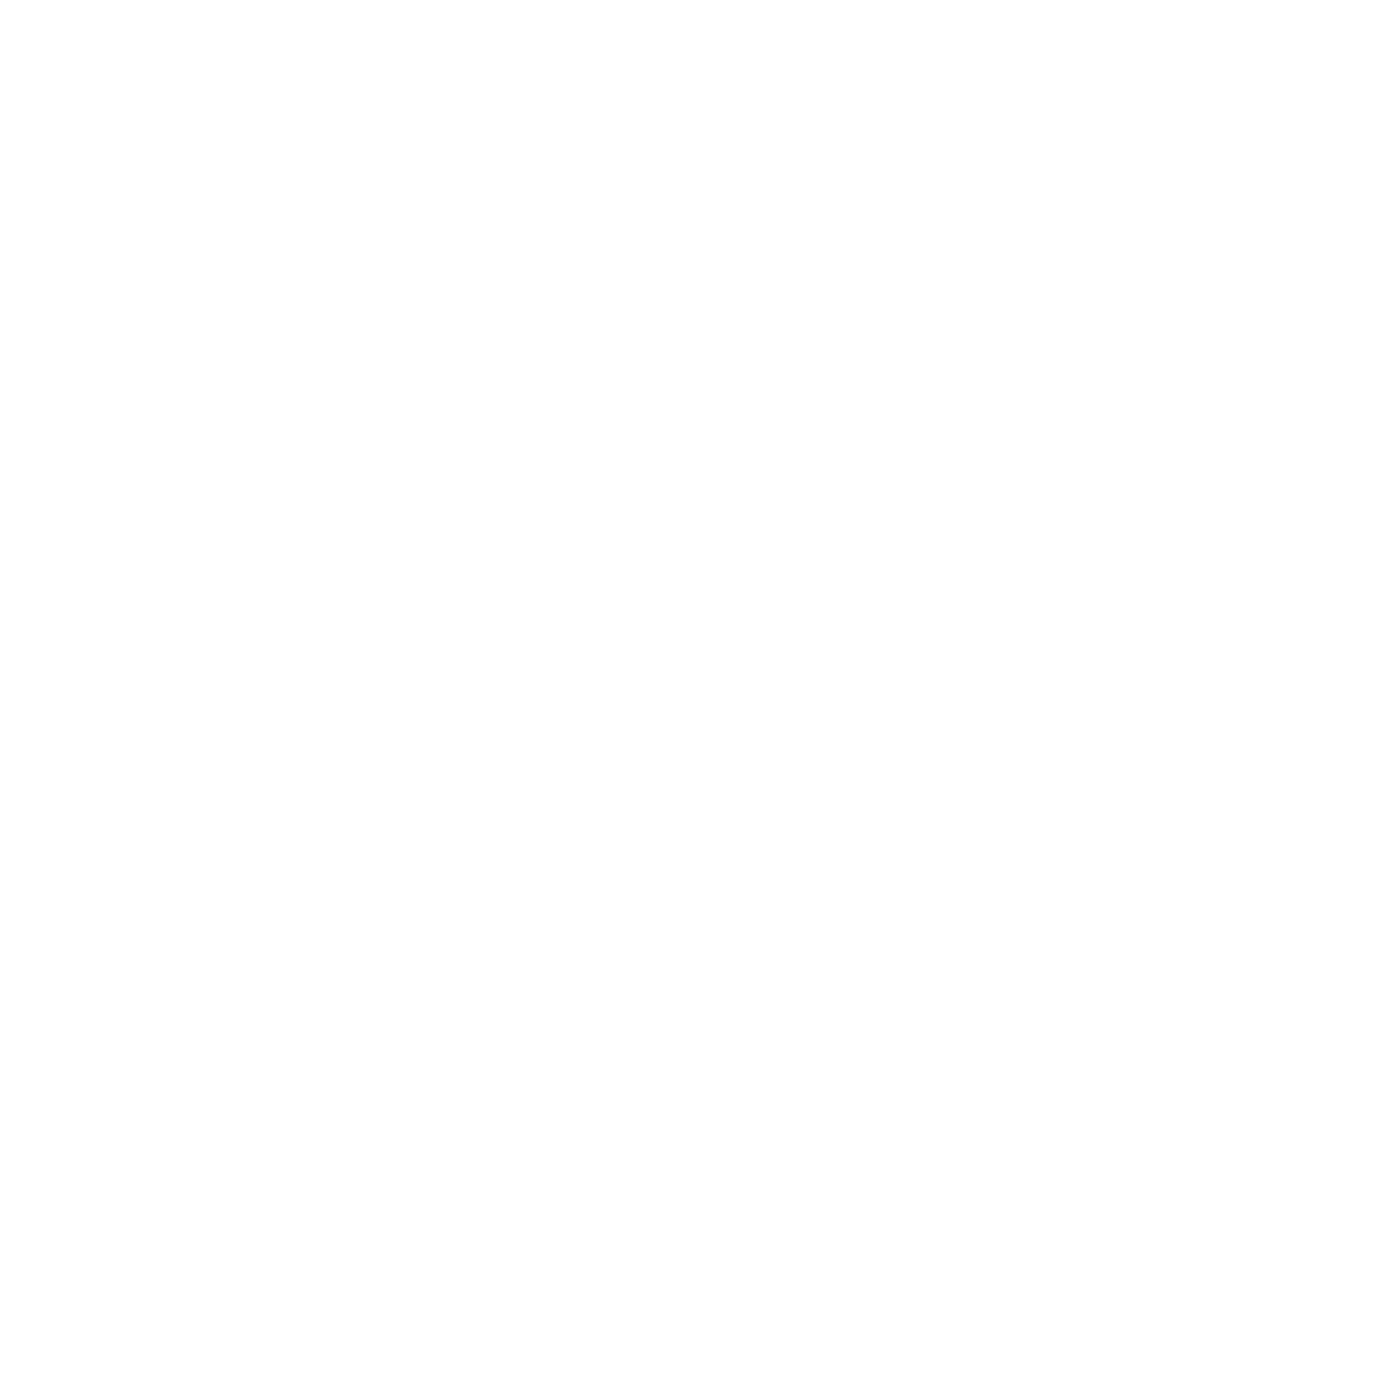 s7_logo_white_PNG.png